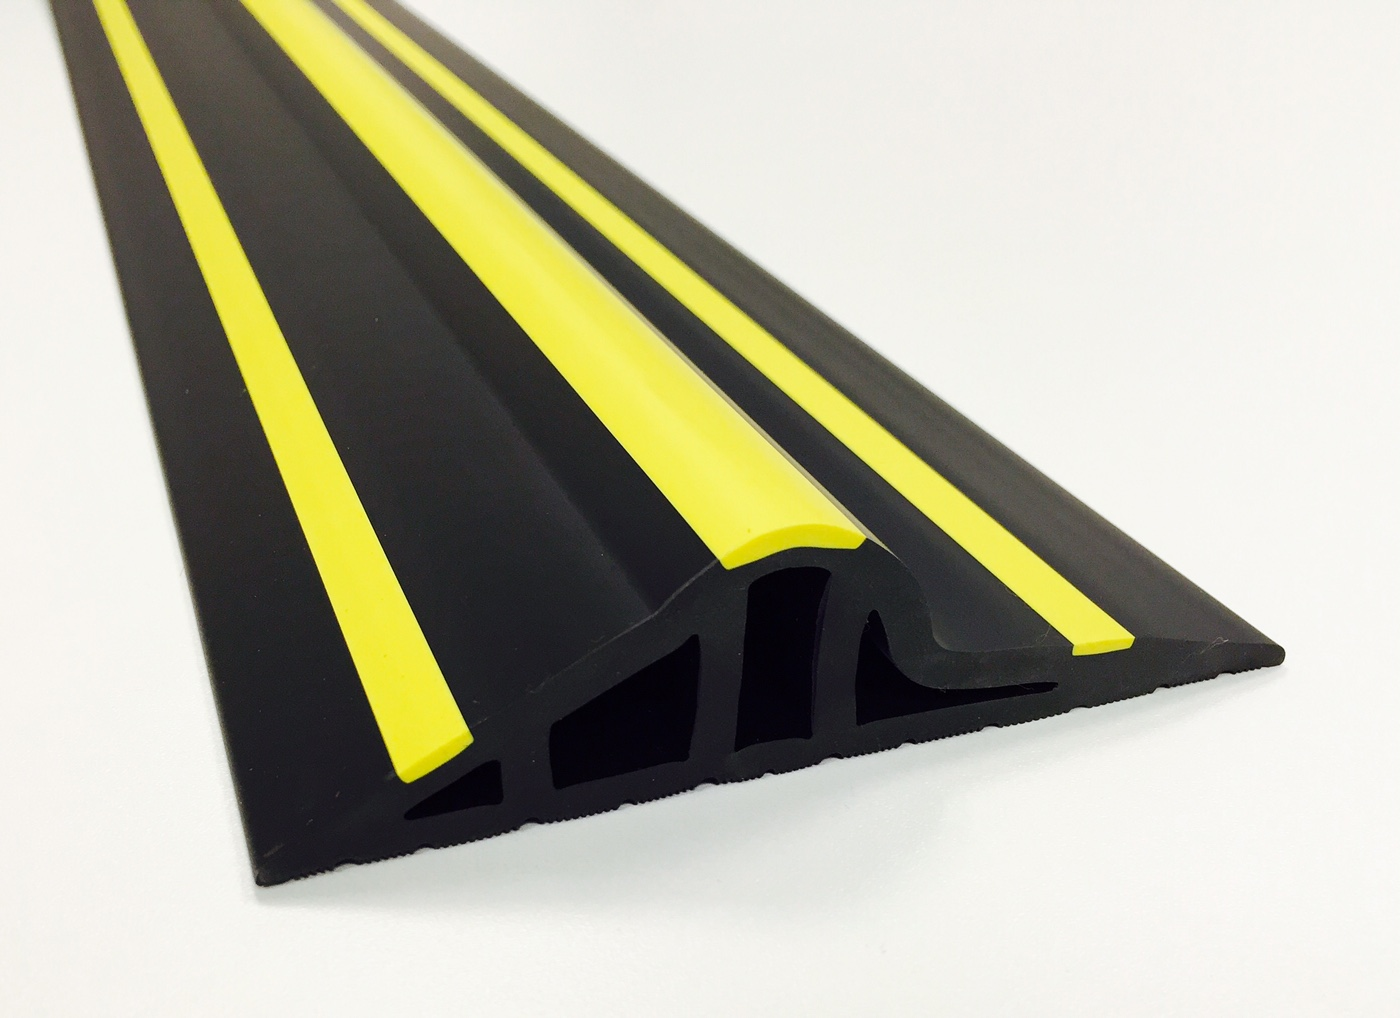 30mm Black Yellow Rubber Garage Threshold Seal Garage Door Seals